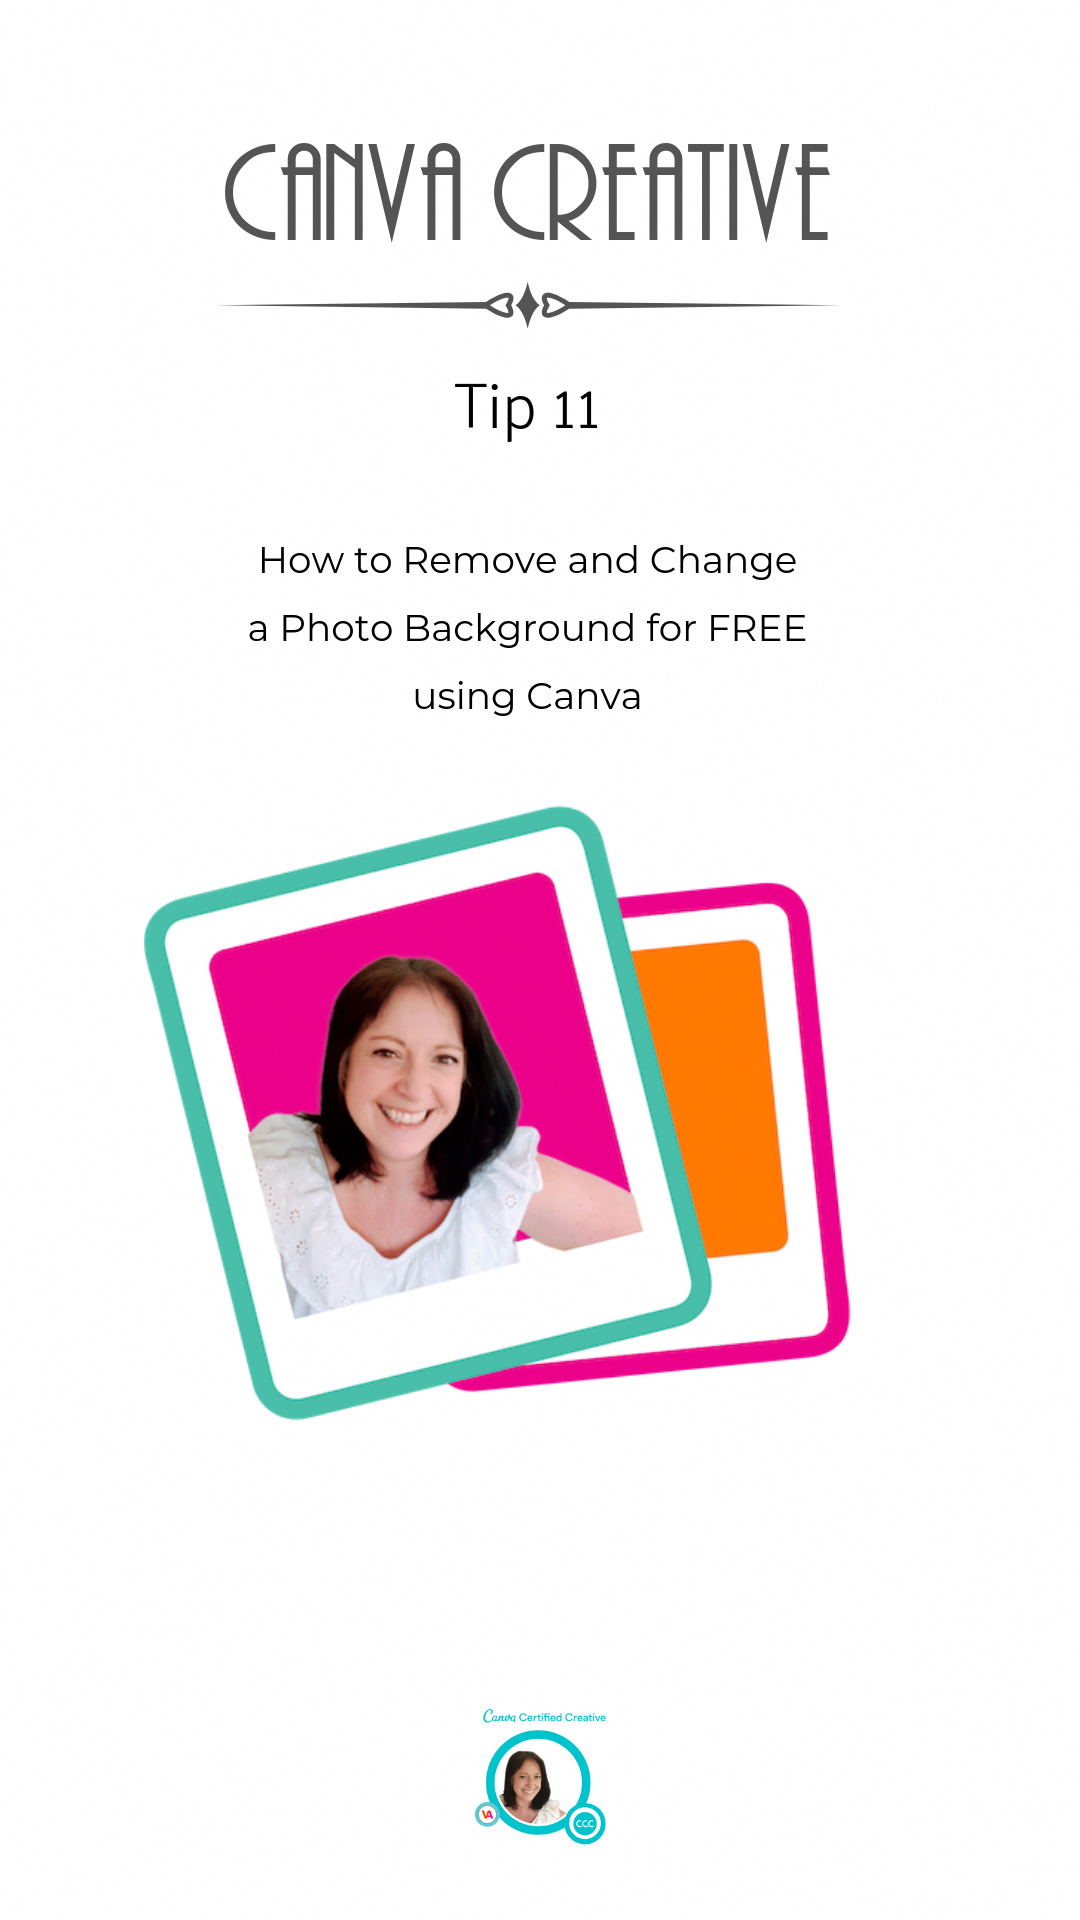 Remove a photo background for FREE, without or a